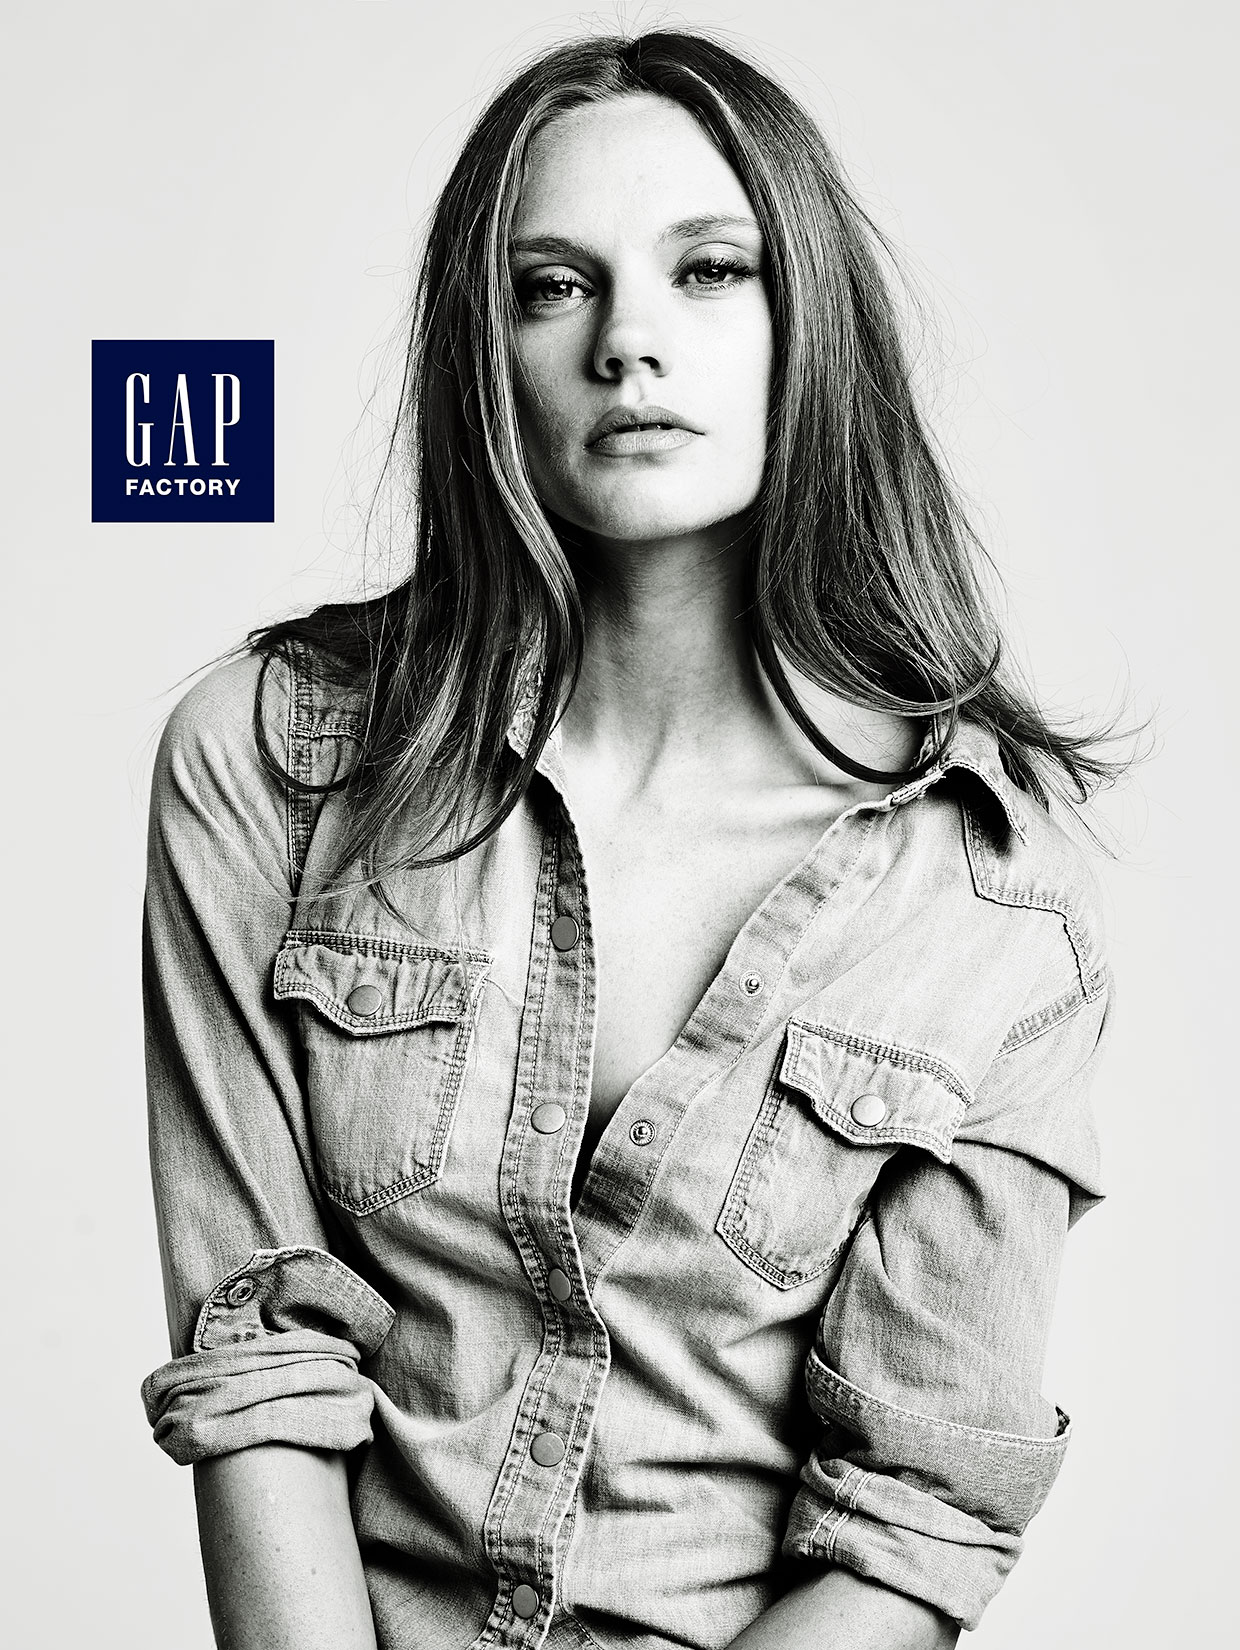 Gap-American-Woman-by-Robert-Ascroft